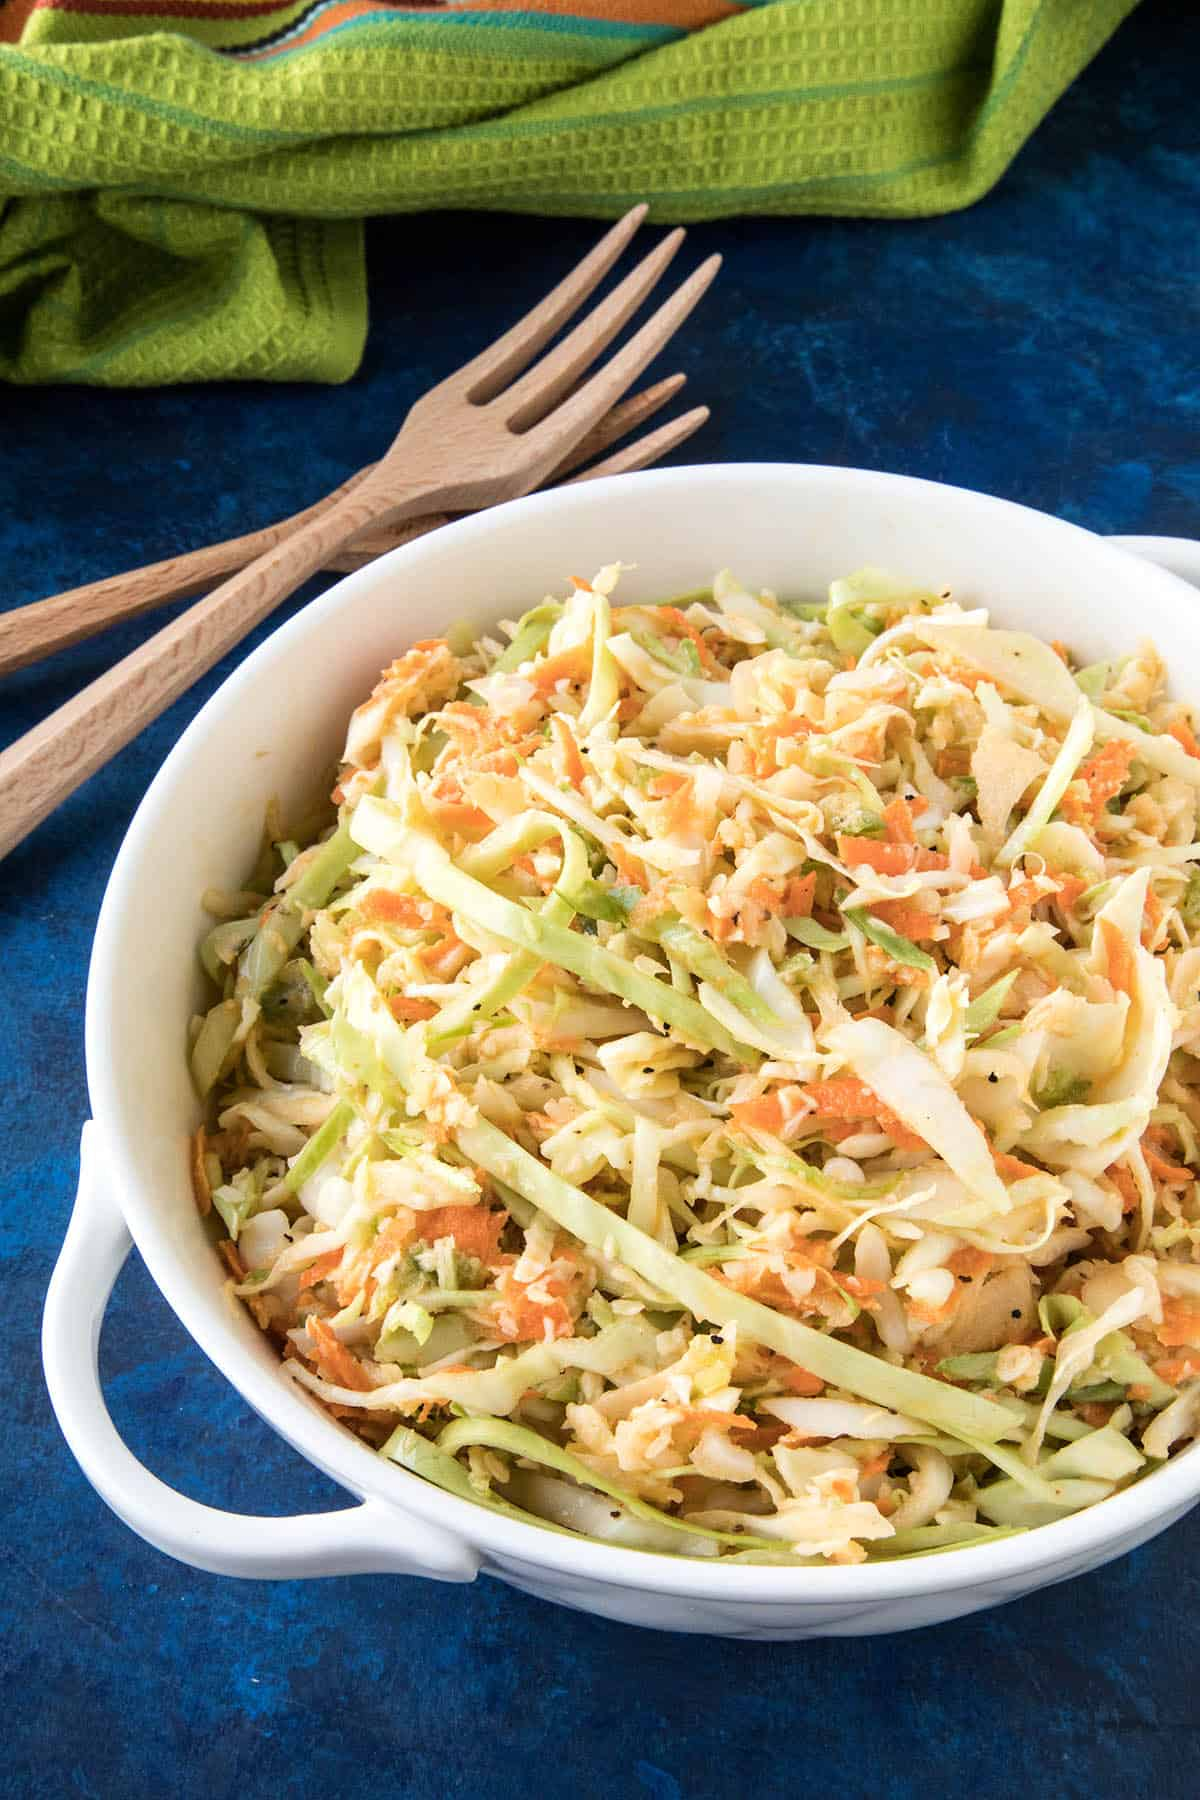 This Spicy Creamy Coleslaw is made with shredded cabbage, carrots, onion and jalapeno, then tossed with a creamy, spicy dressing